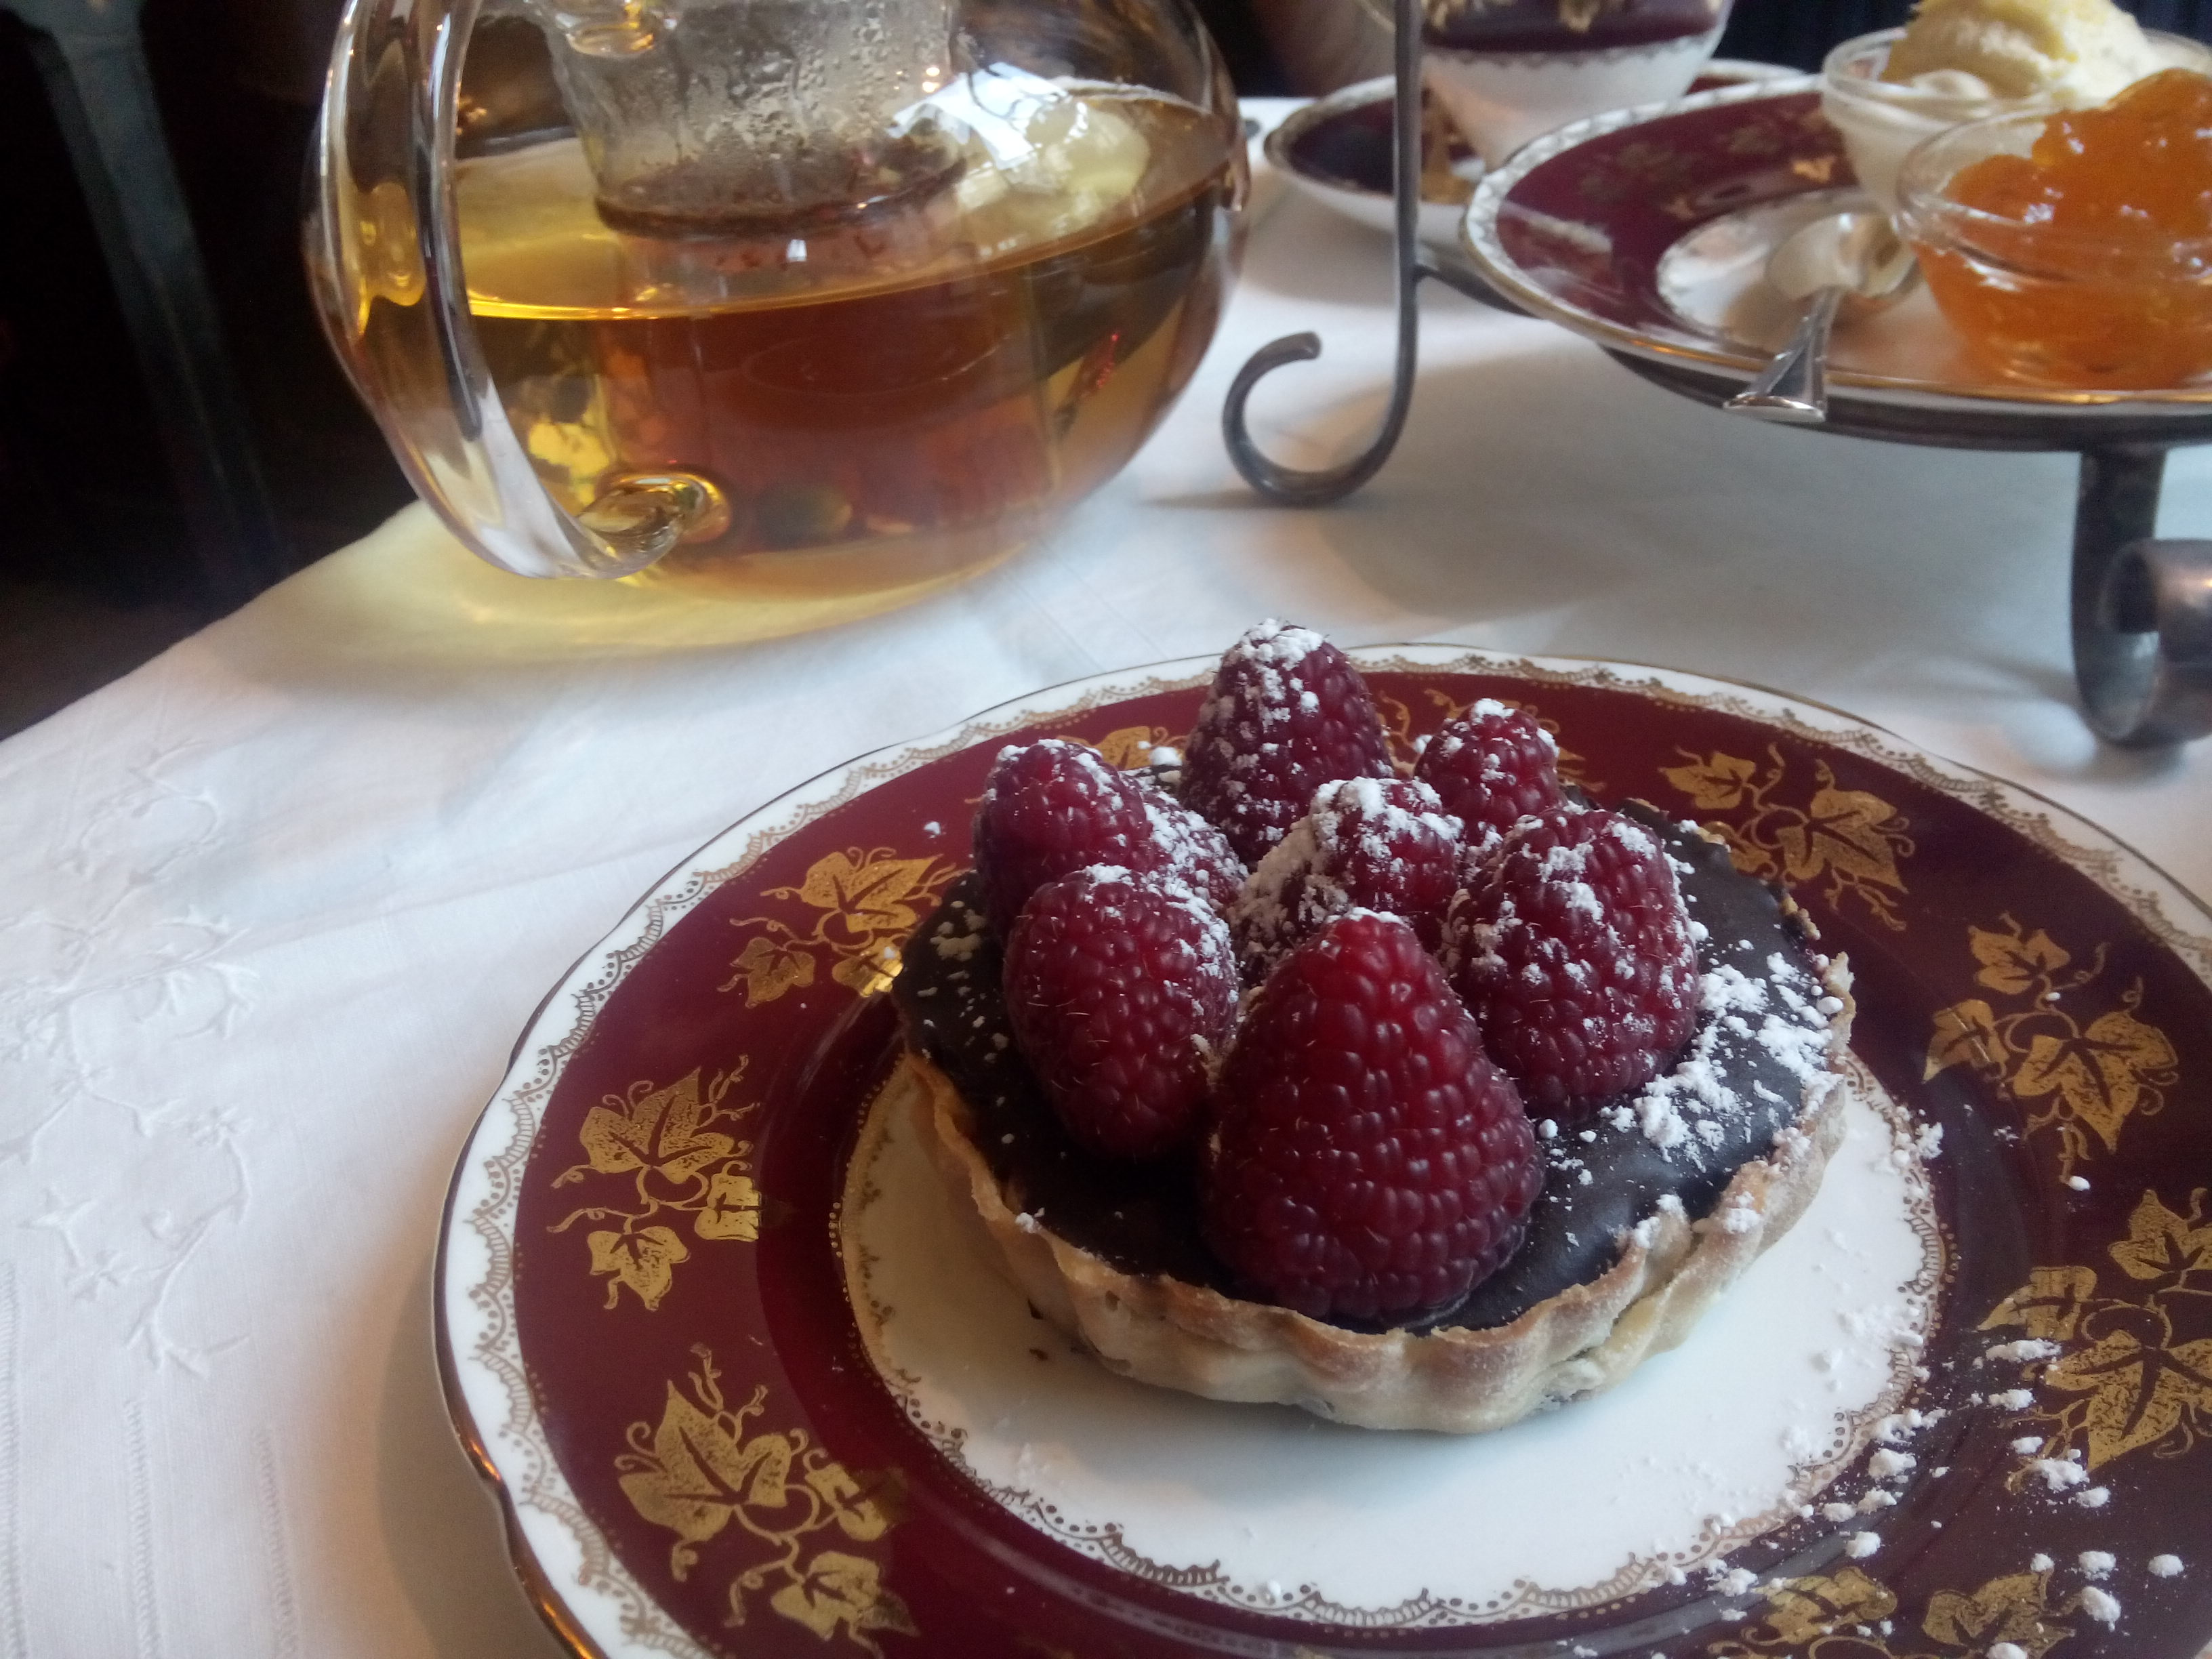 A choclate and raspberry tart on a plate, with a glass teapot half full in the background